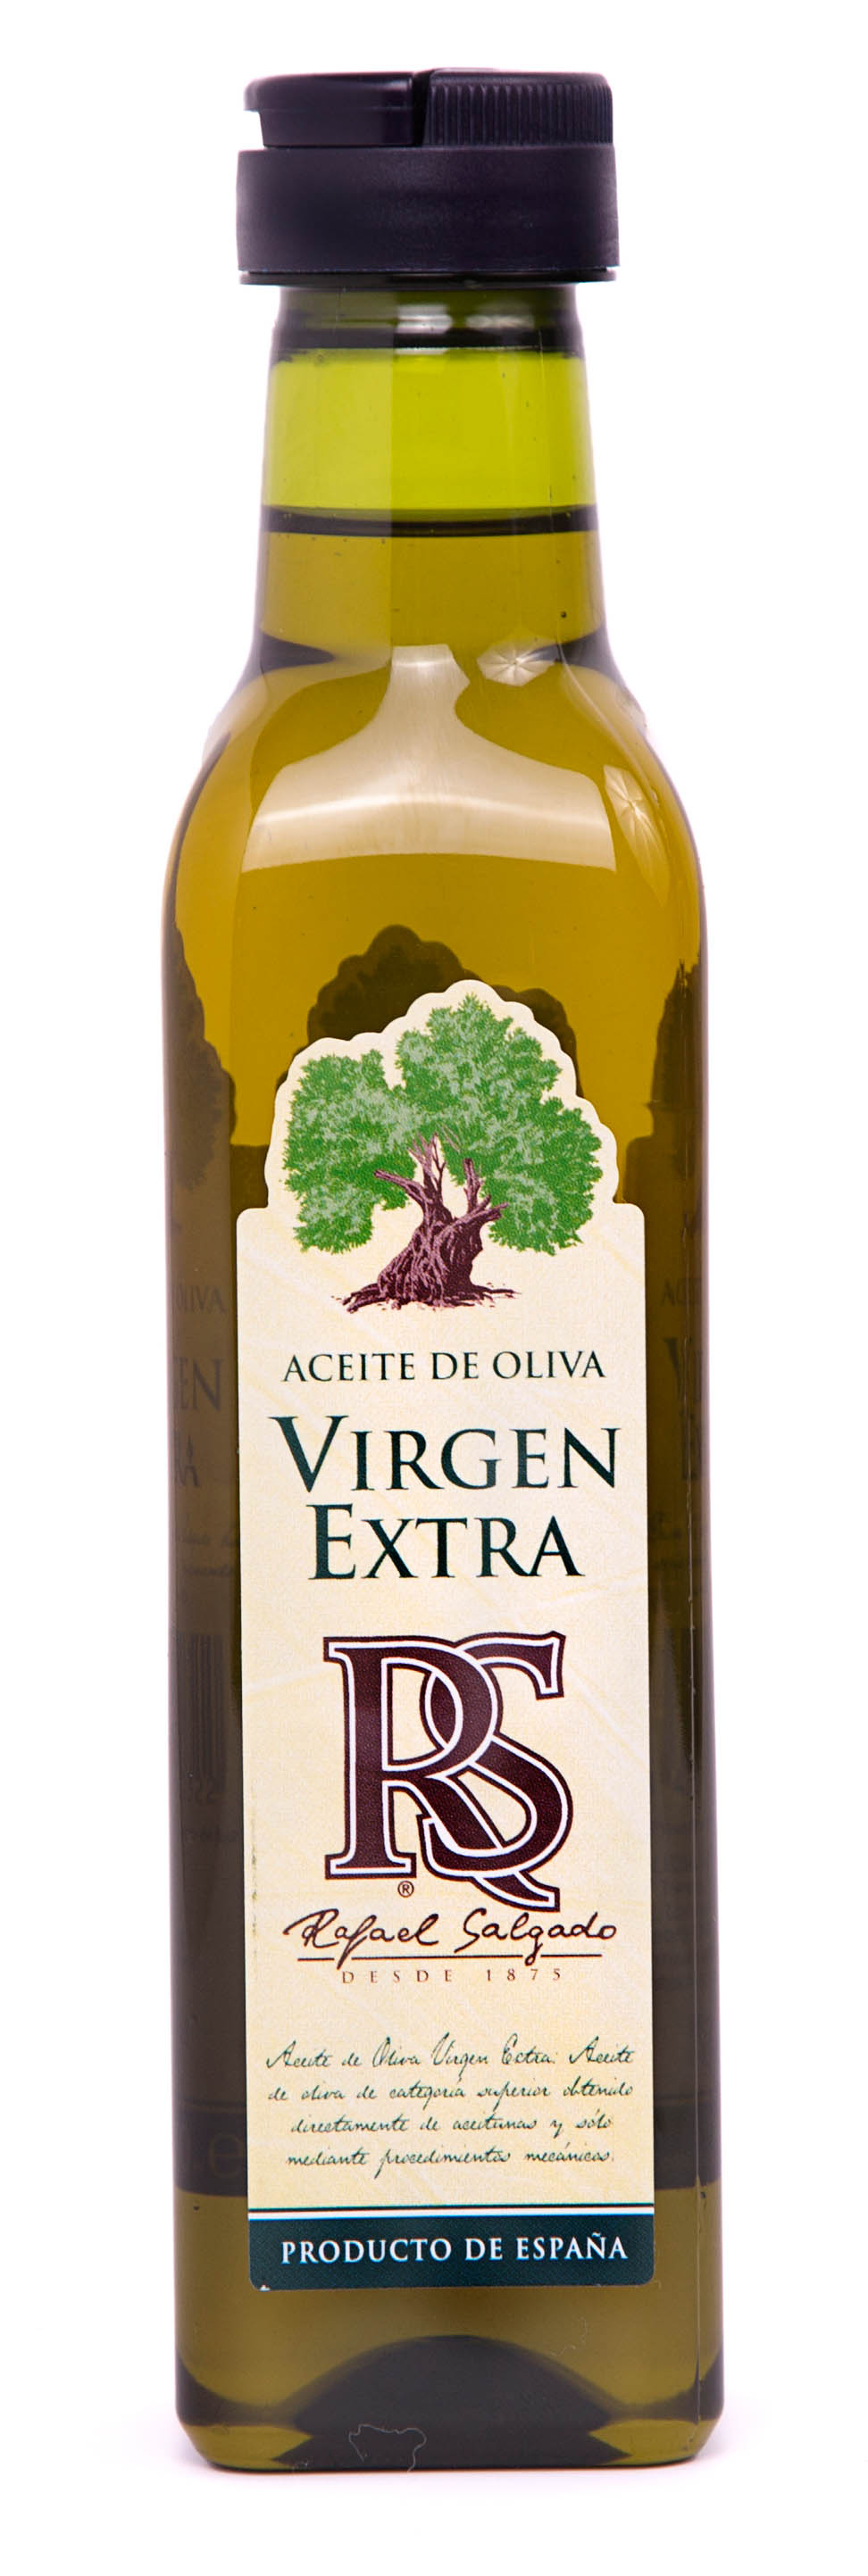 Aceite de Oliva Virgen Extra RS cuadrada pet 250 ml